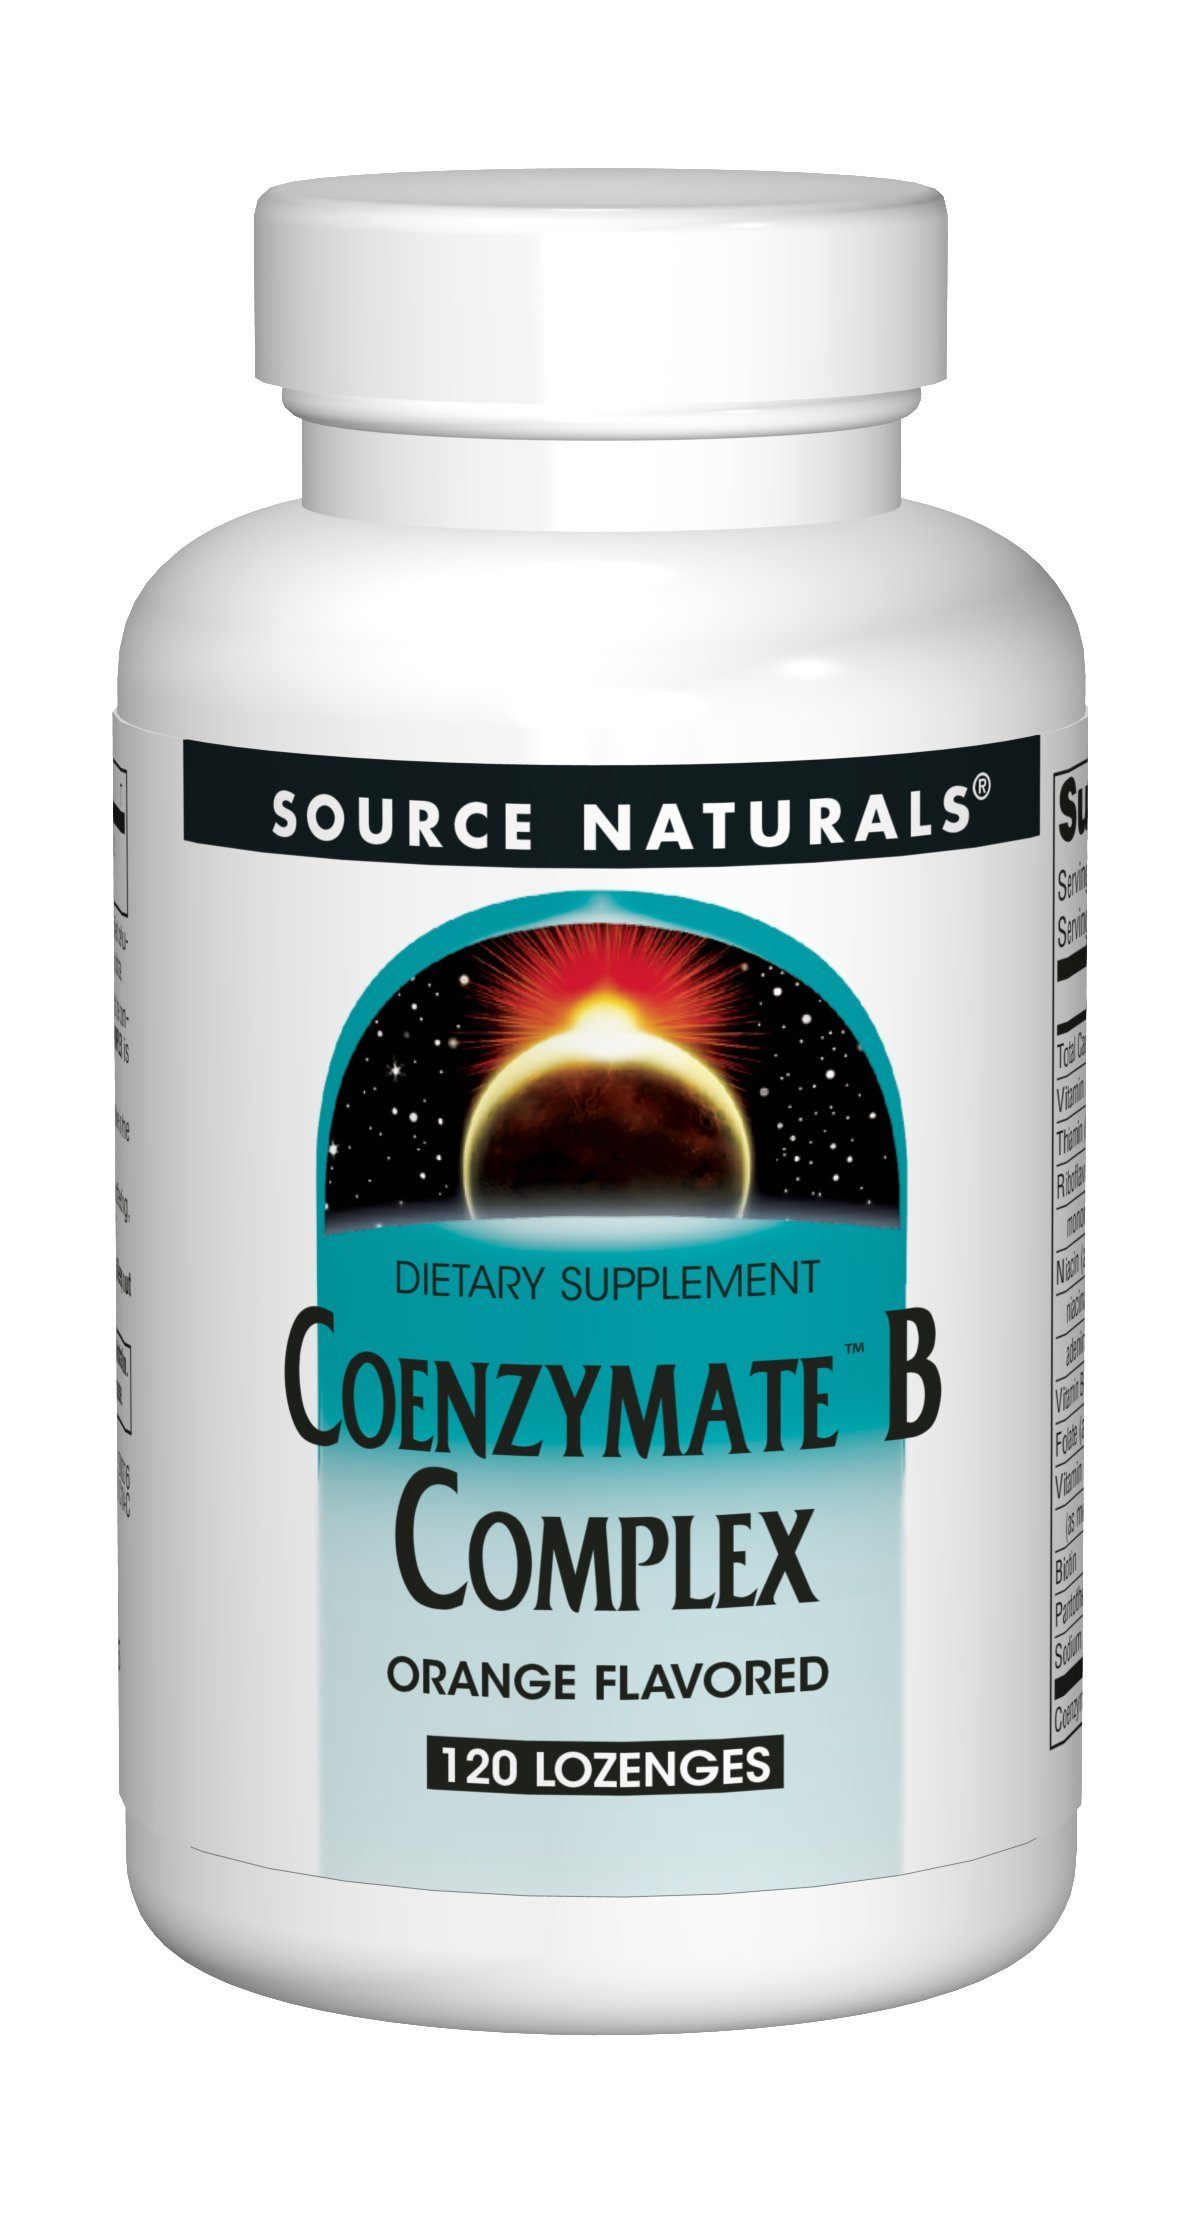 Source Naturals Coenzymate B Complex Fast Acting, Quick Dissolve Orange - 120 Lozenges